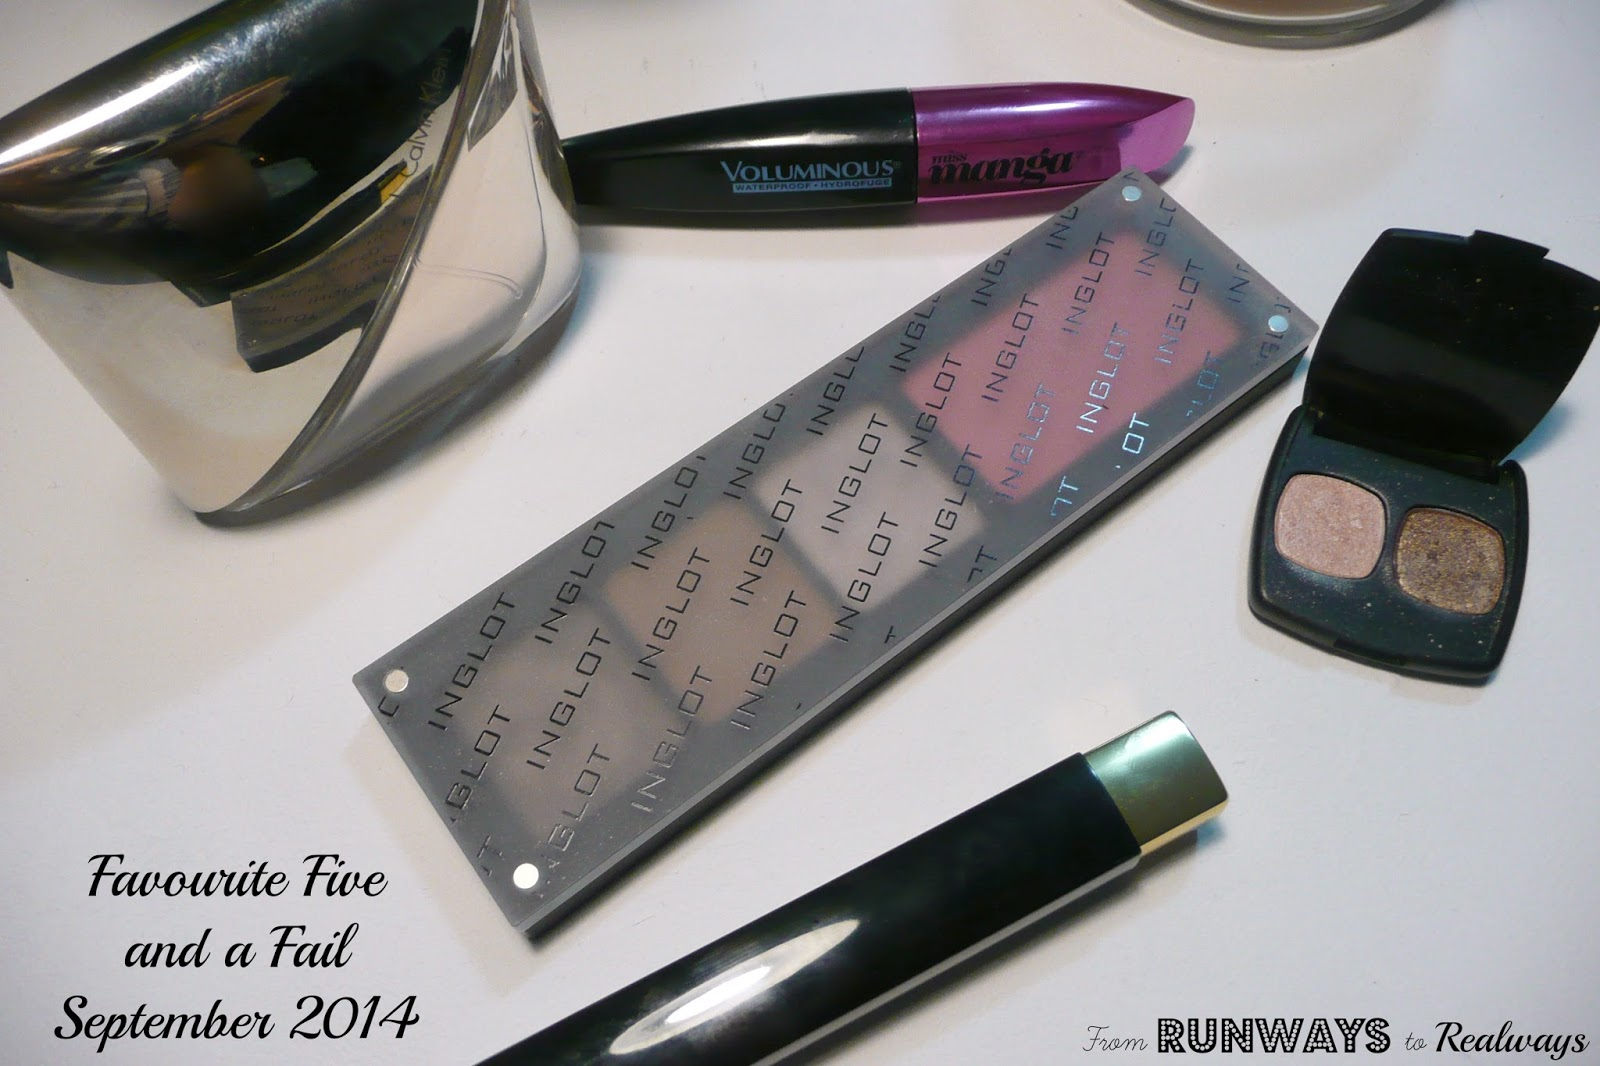 Favourite Five and a Fail: September 2014